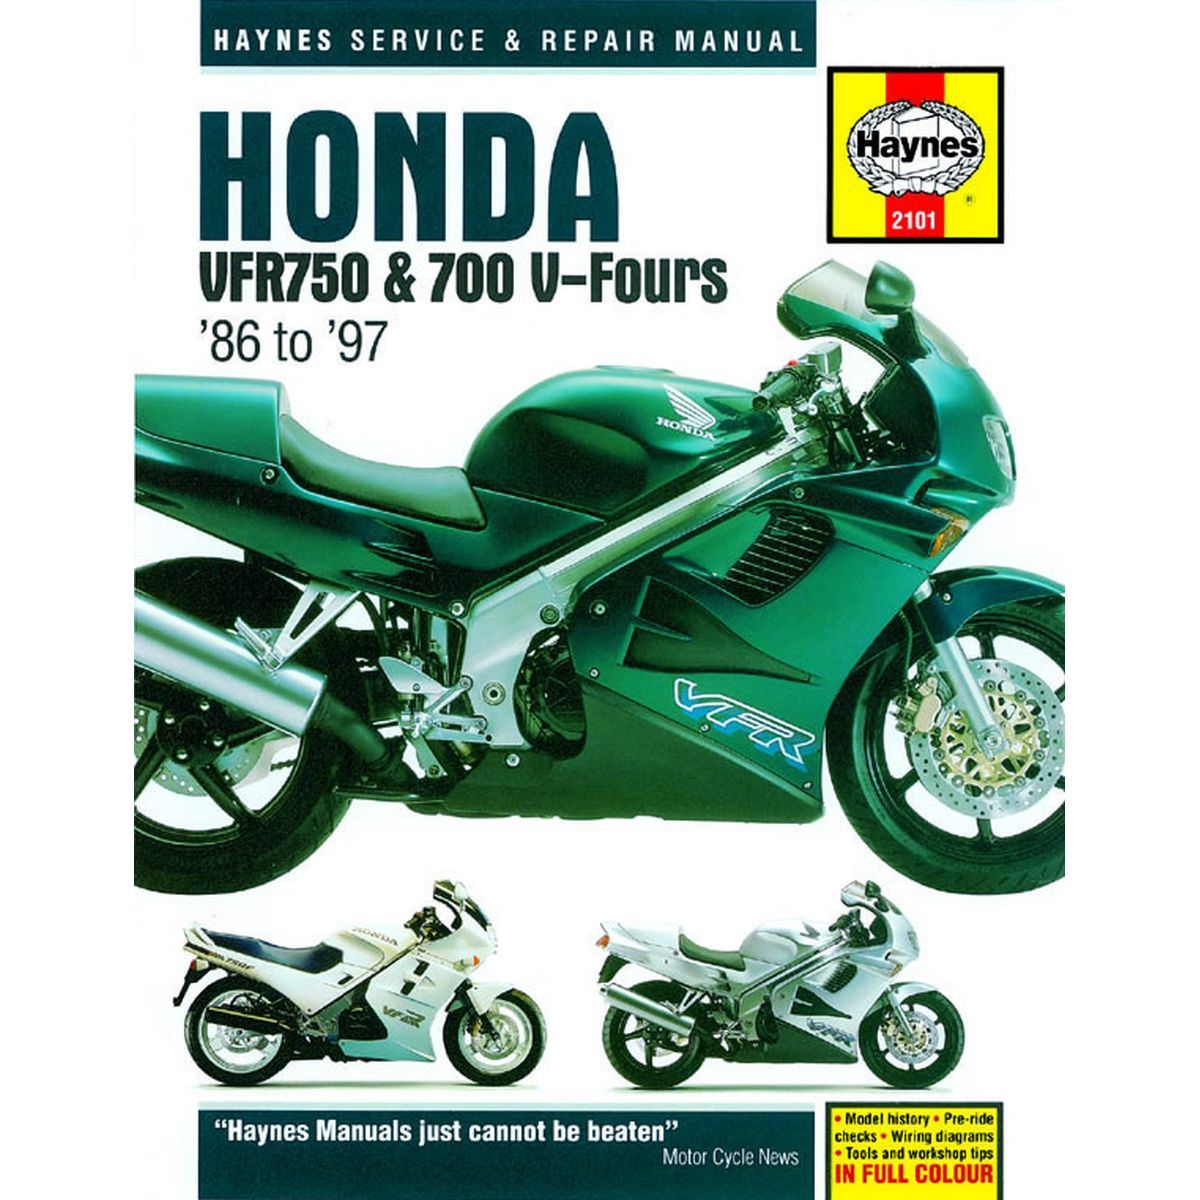 workshop manual honda vfr750f 1986 1997 ebay workshop manual honda crv 2014 workshop manual honda cbf 1000